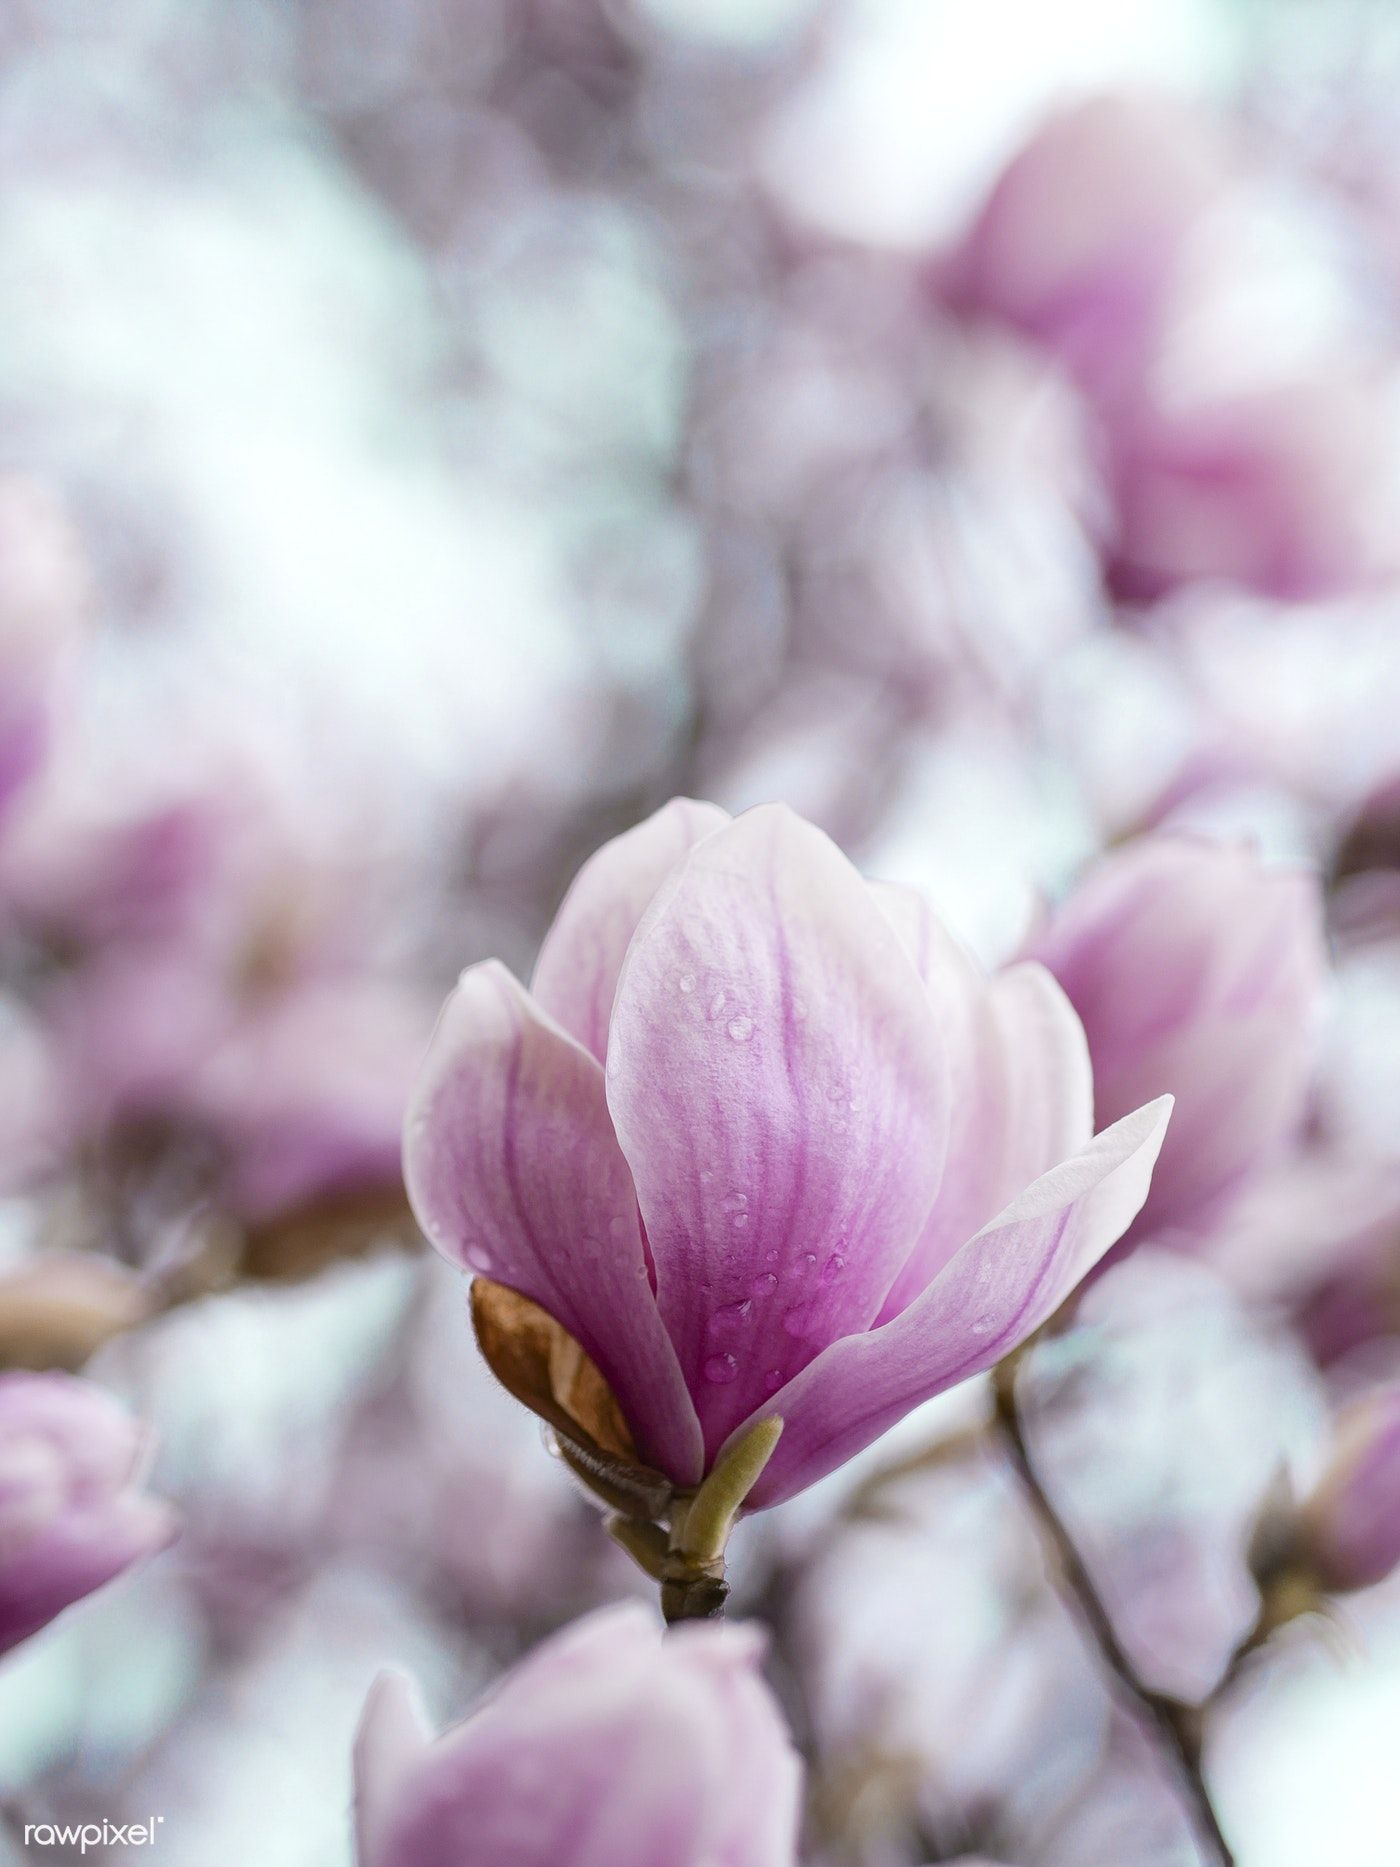 Closeup Of Pink Magnolia Flowers Free Image By Rawpixelcom